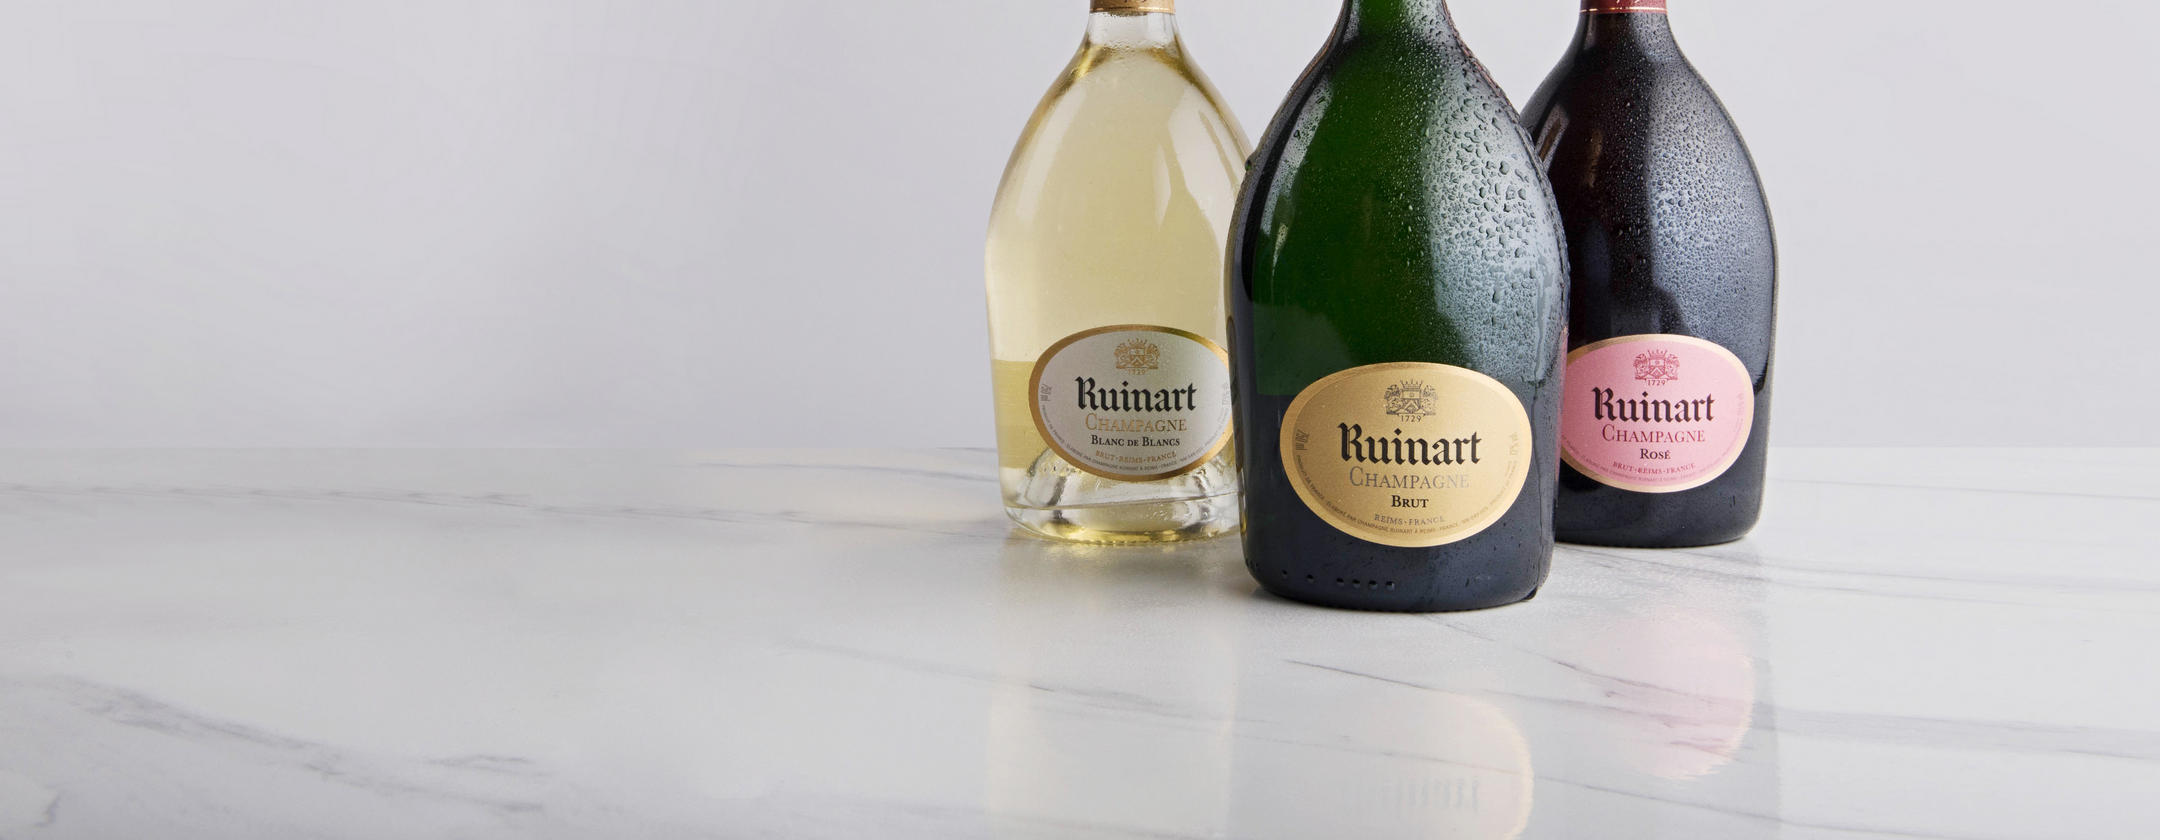 Save 20% on<br>Champagne Ruinart _ Ends midnight tonight